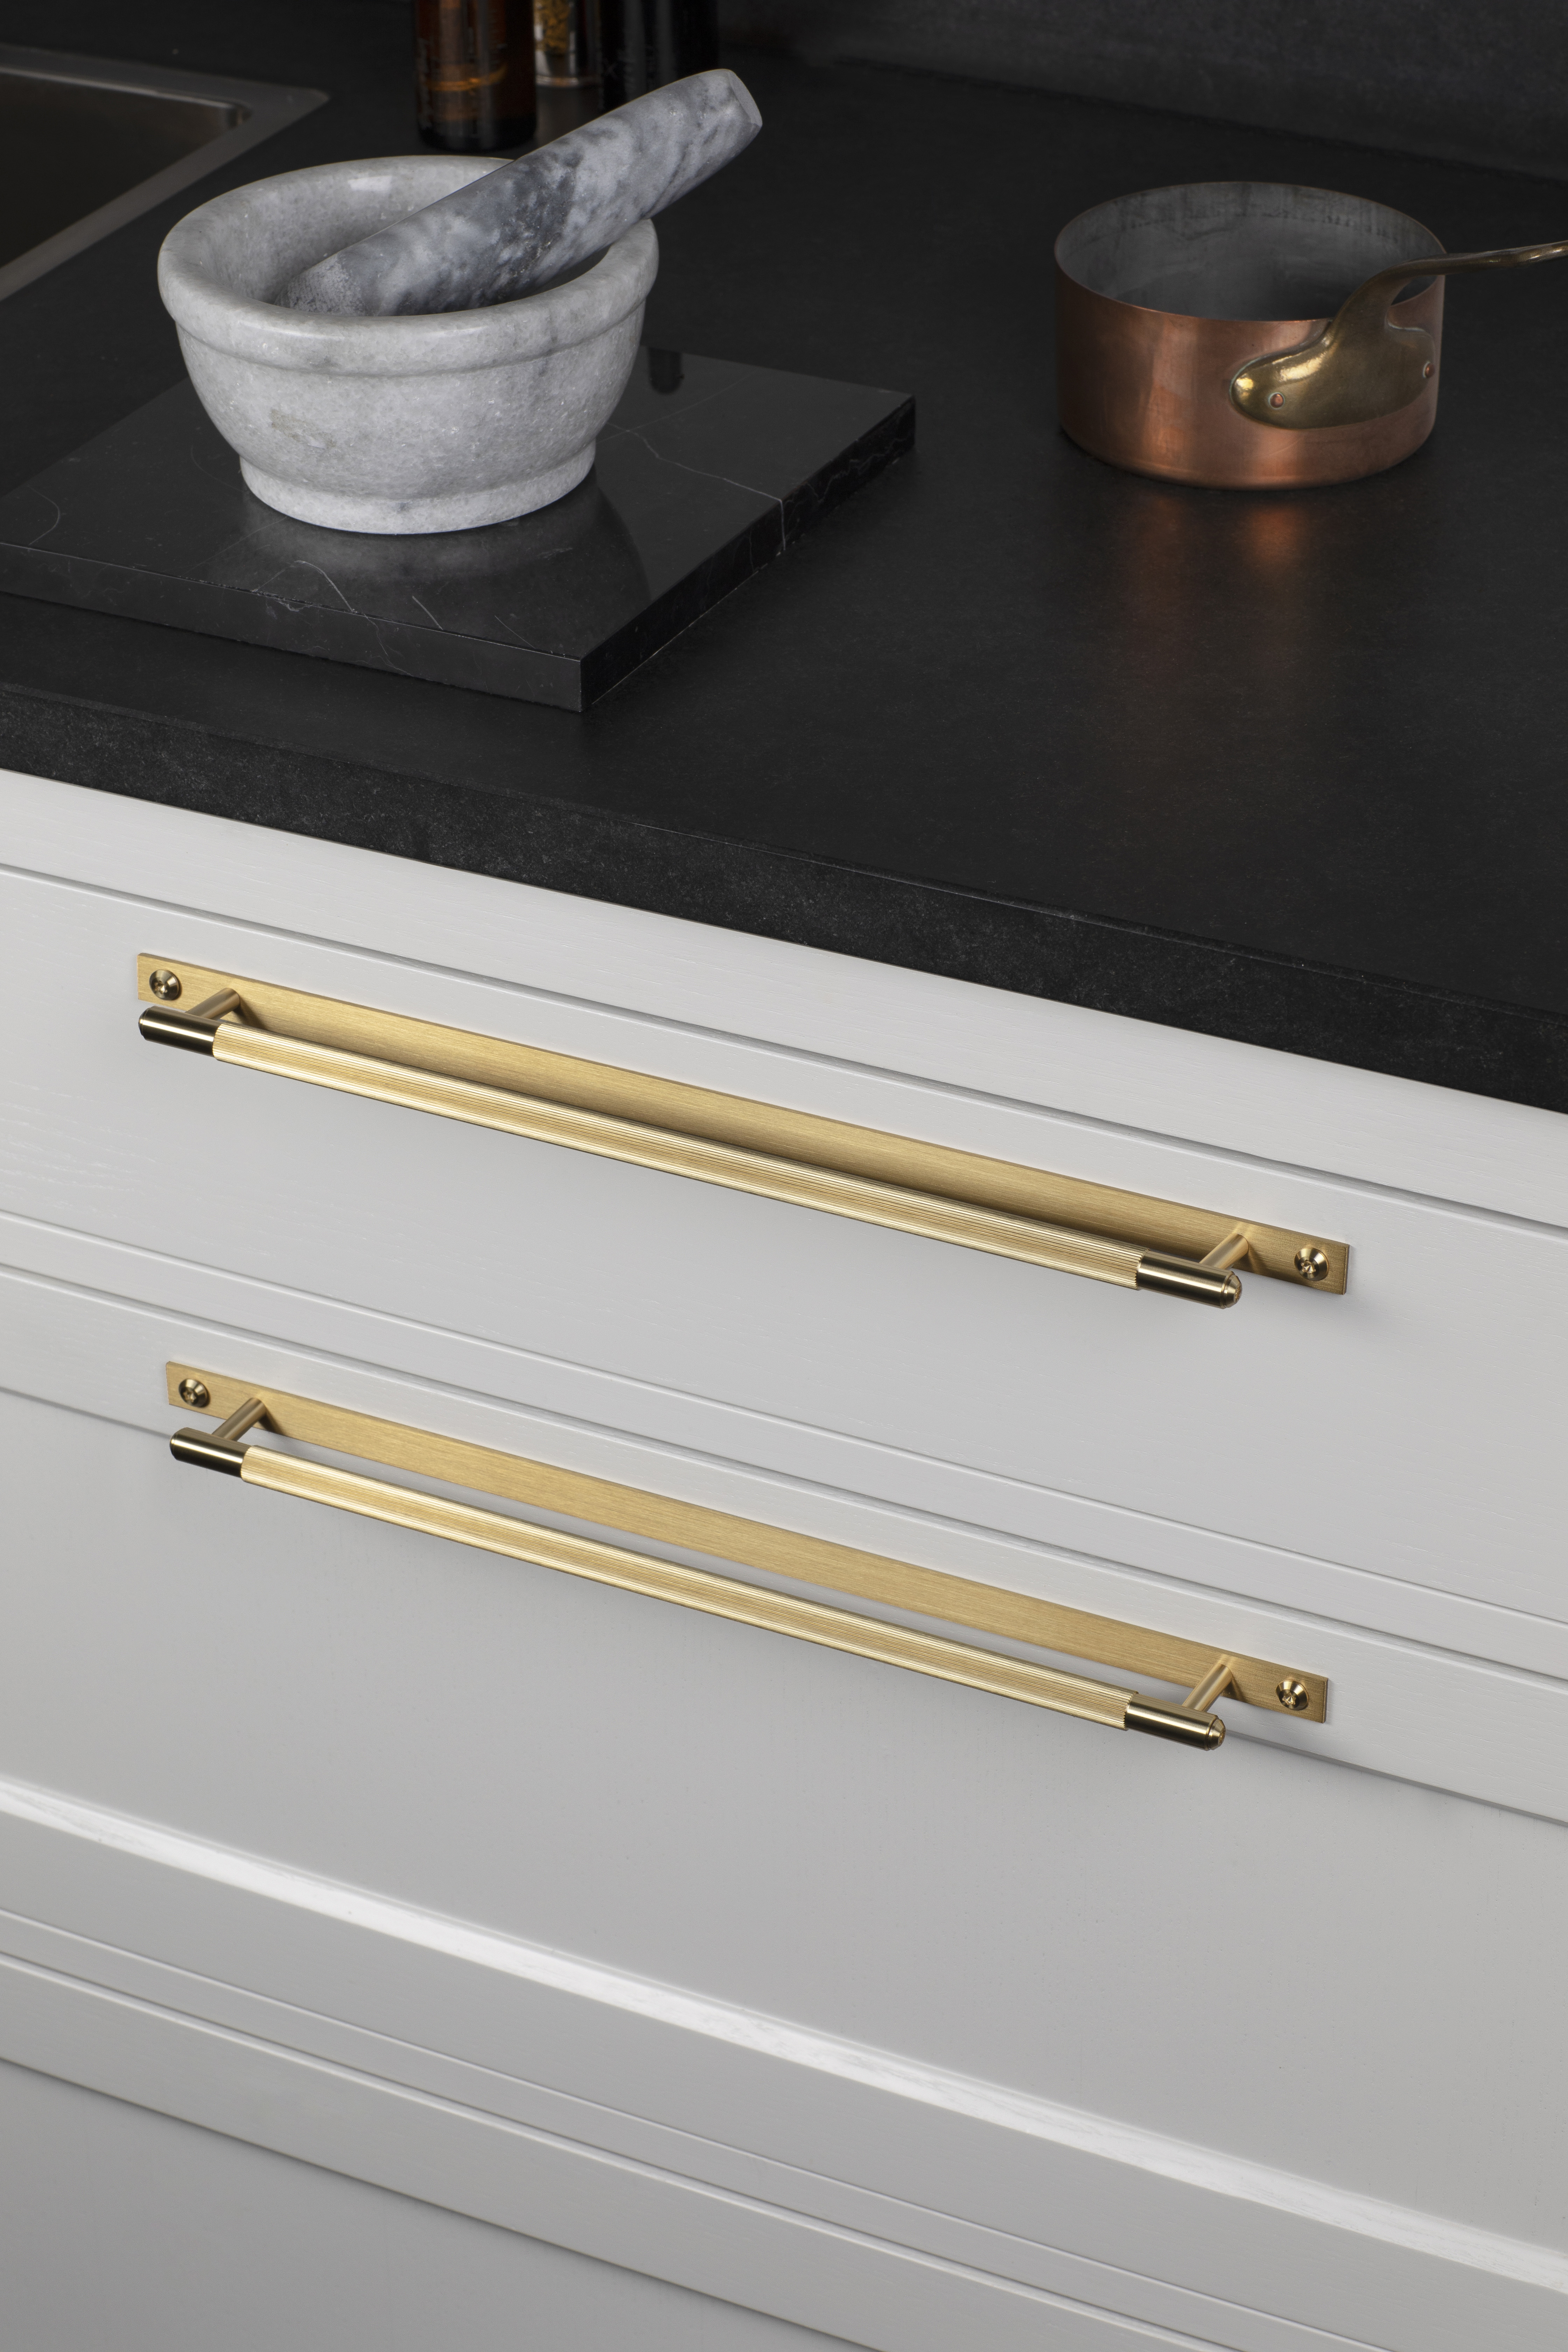 The pull bar has a diamond-cut linear knurl pattern and includes a rectangular back plate.